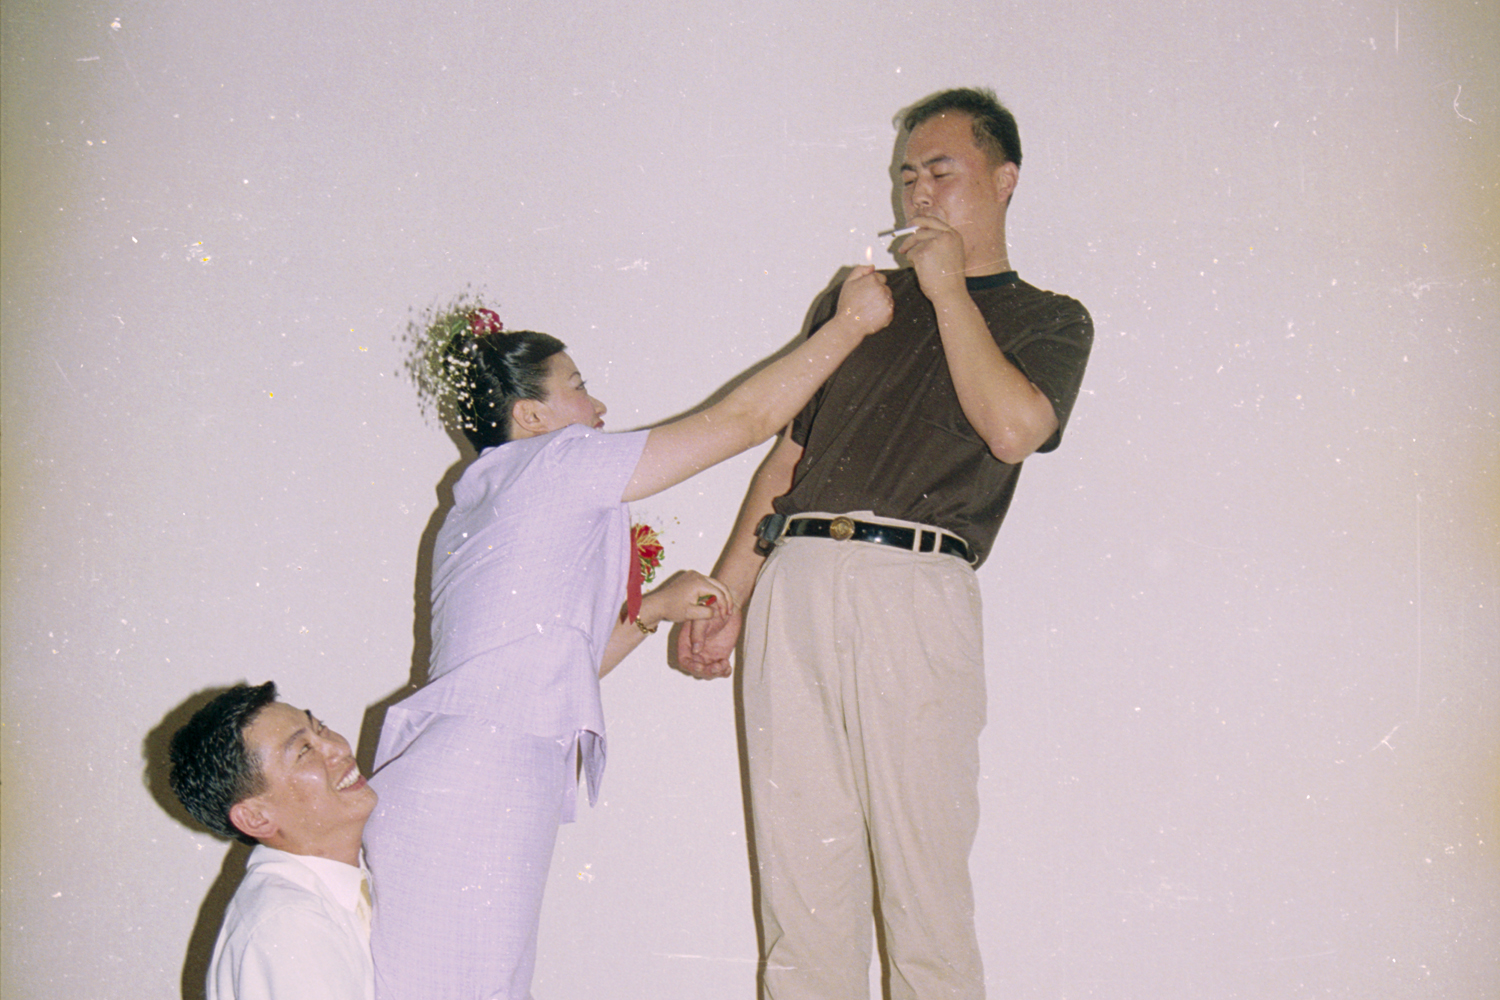 thomas-sauvin-beijing-silvermine-until-death-do-us-part-photography-of-china-9.jpg